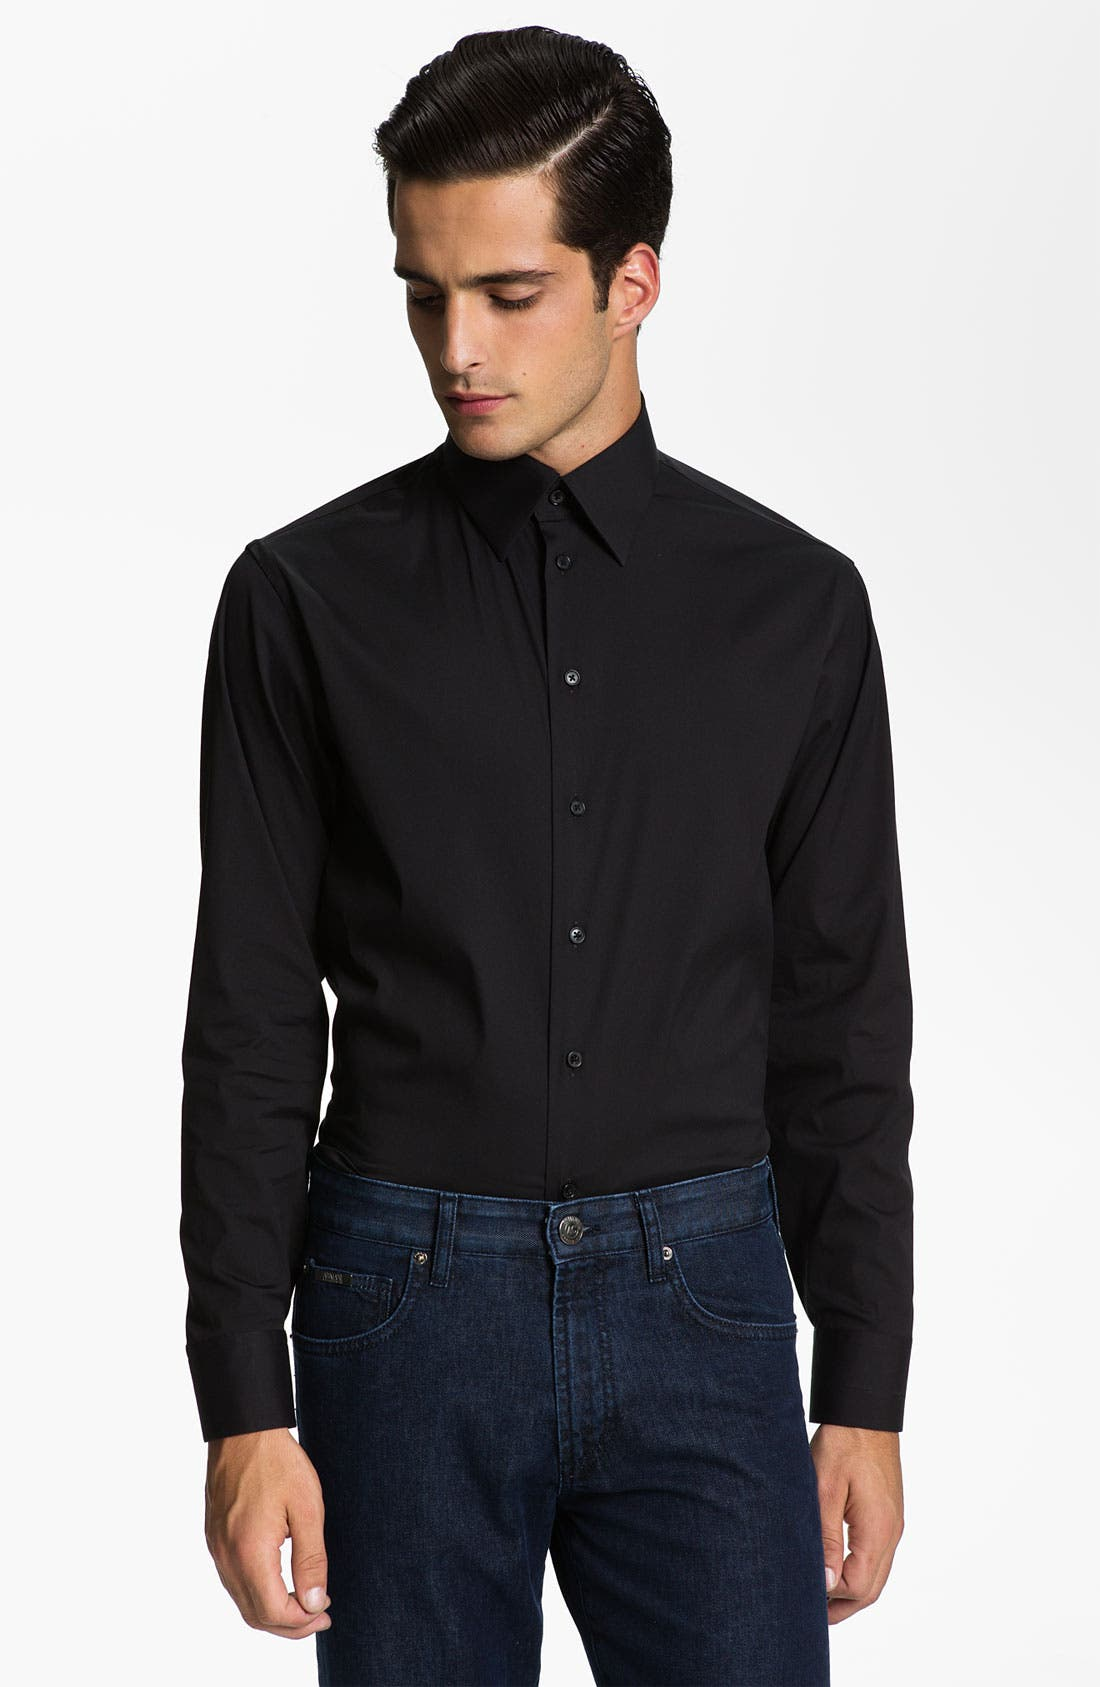 Alternate Image 1 Selected - Armani Collezioni Trim Fit Sport Shirt